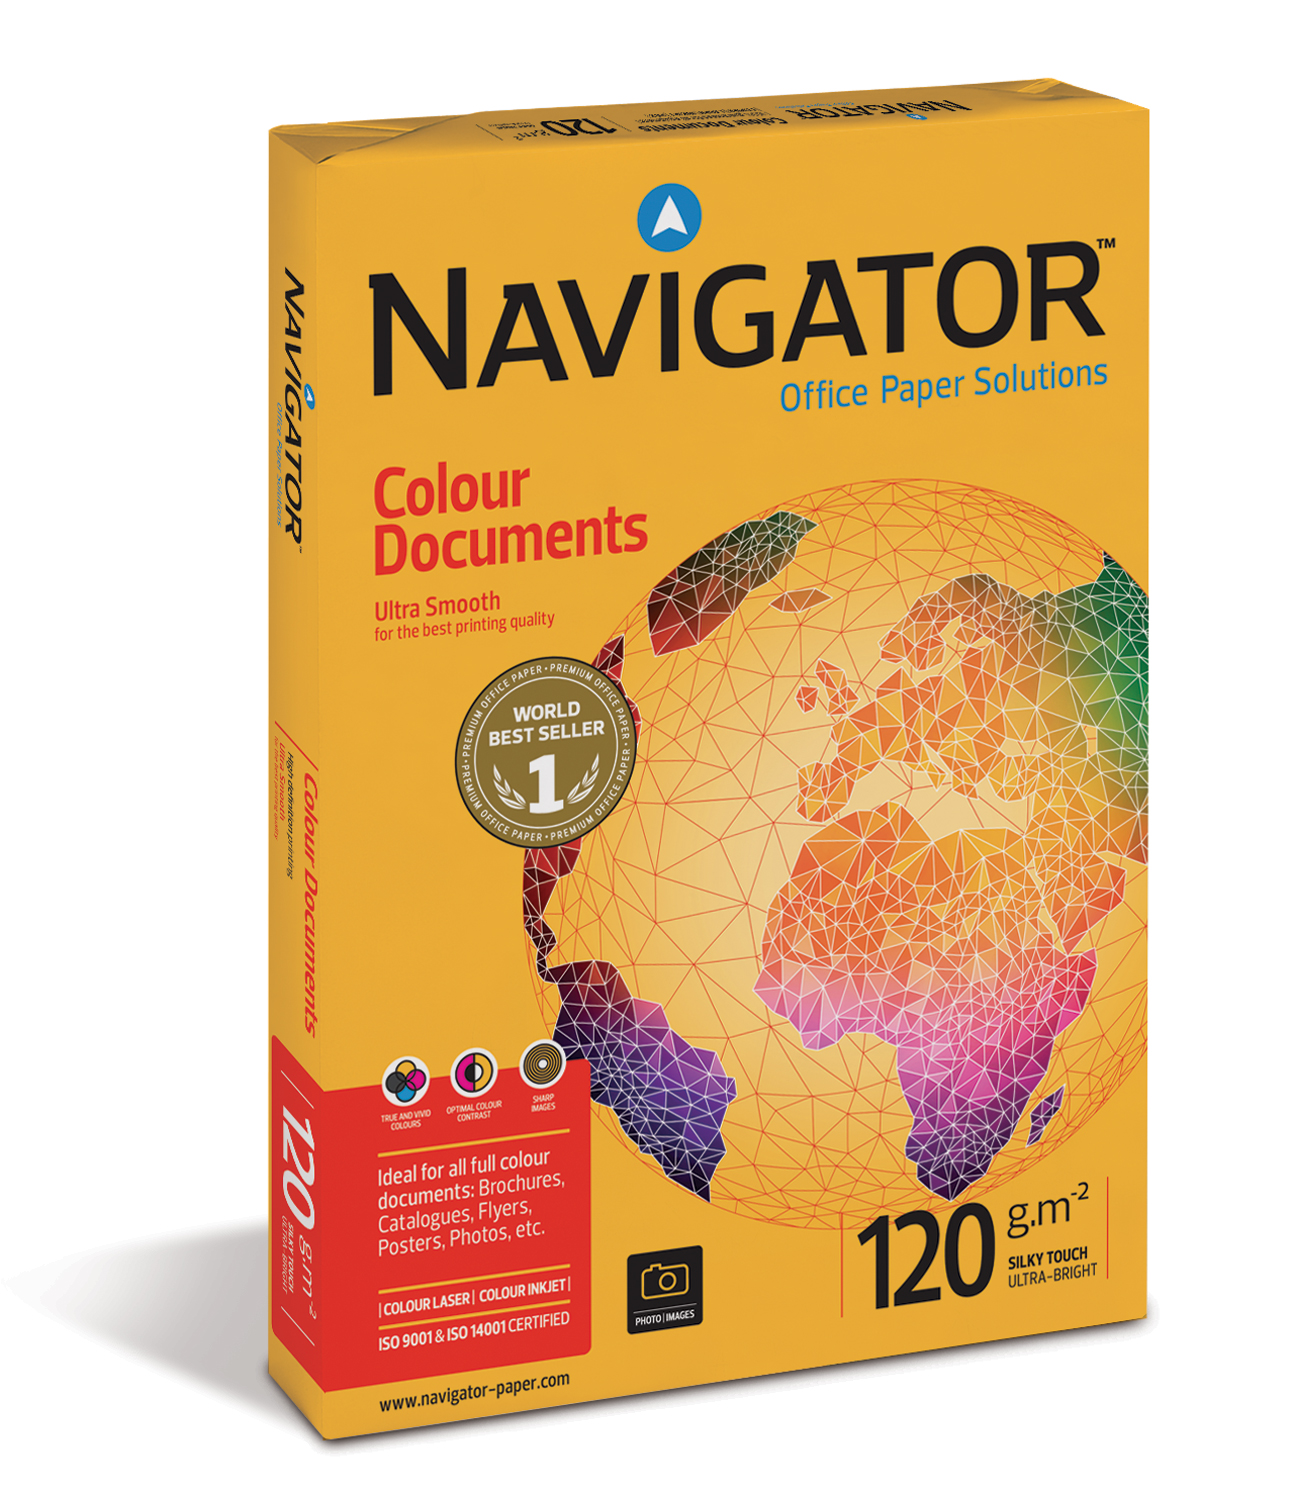 Navigator Color Documents 120g/m² DIN-A4